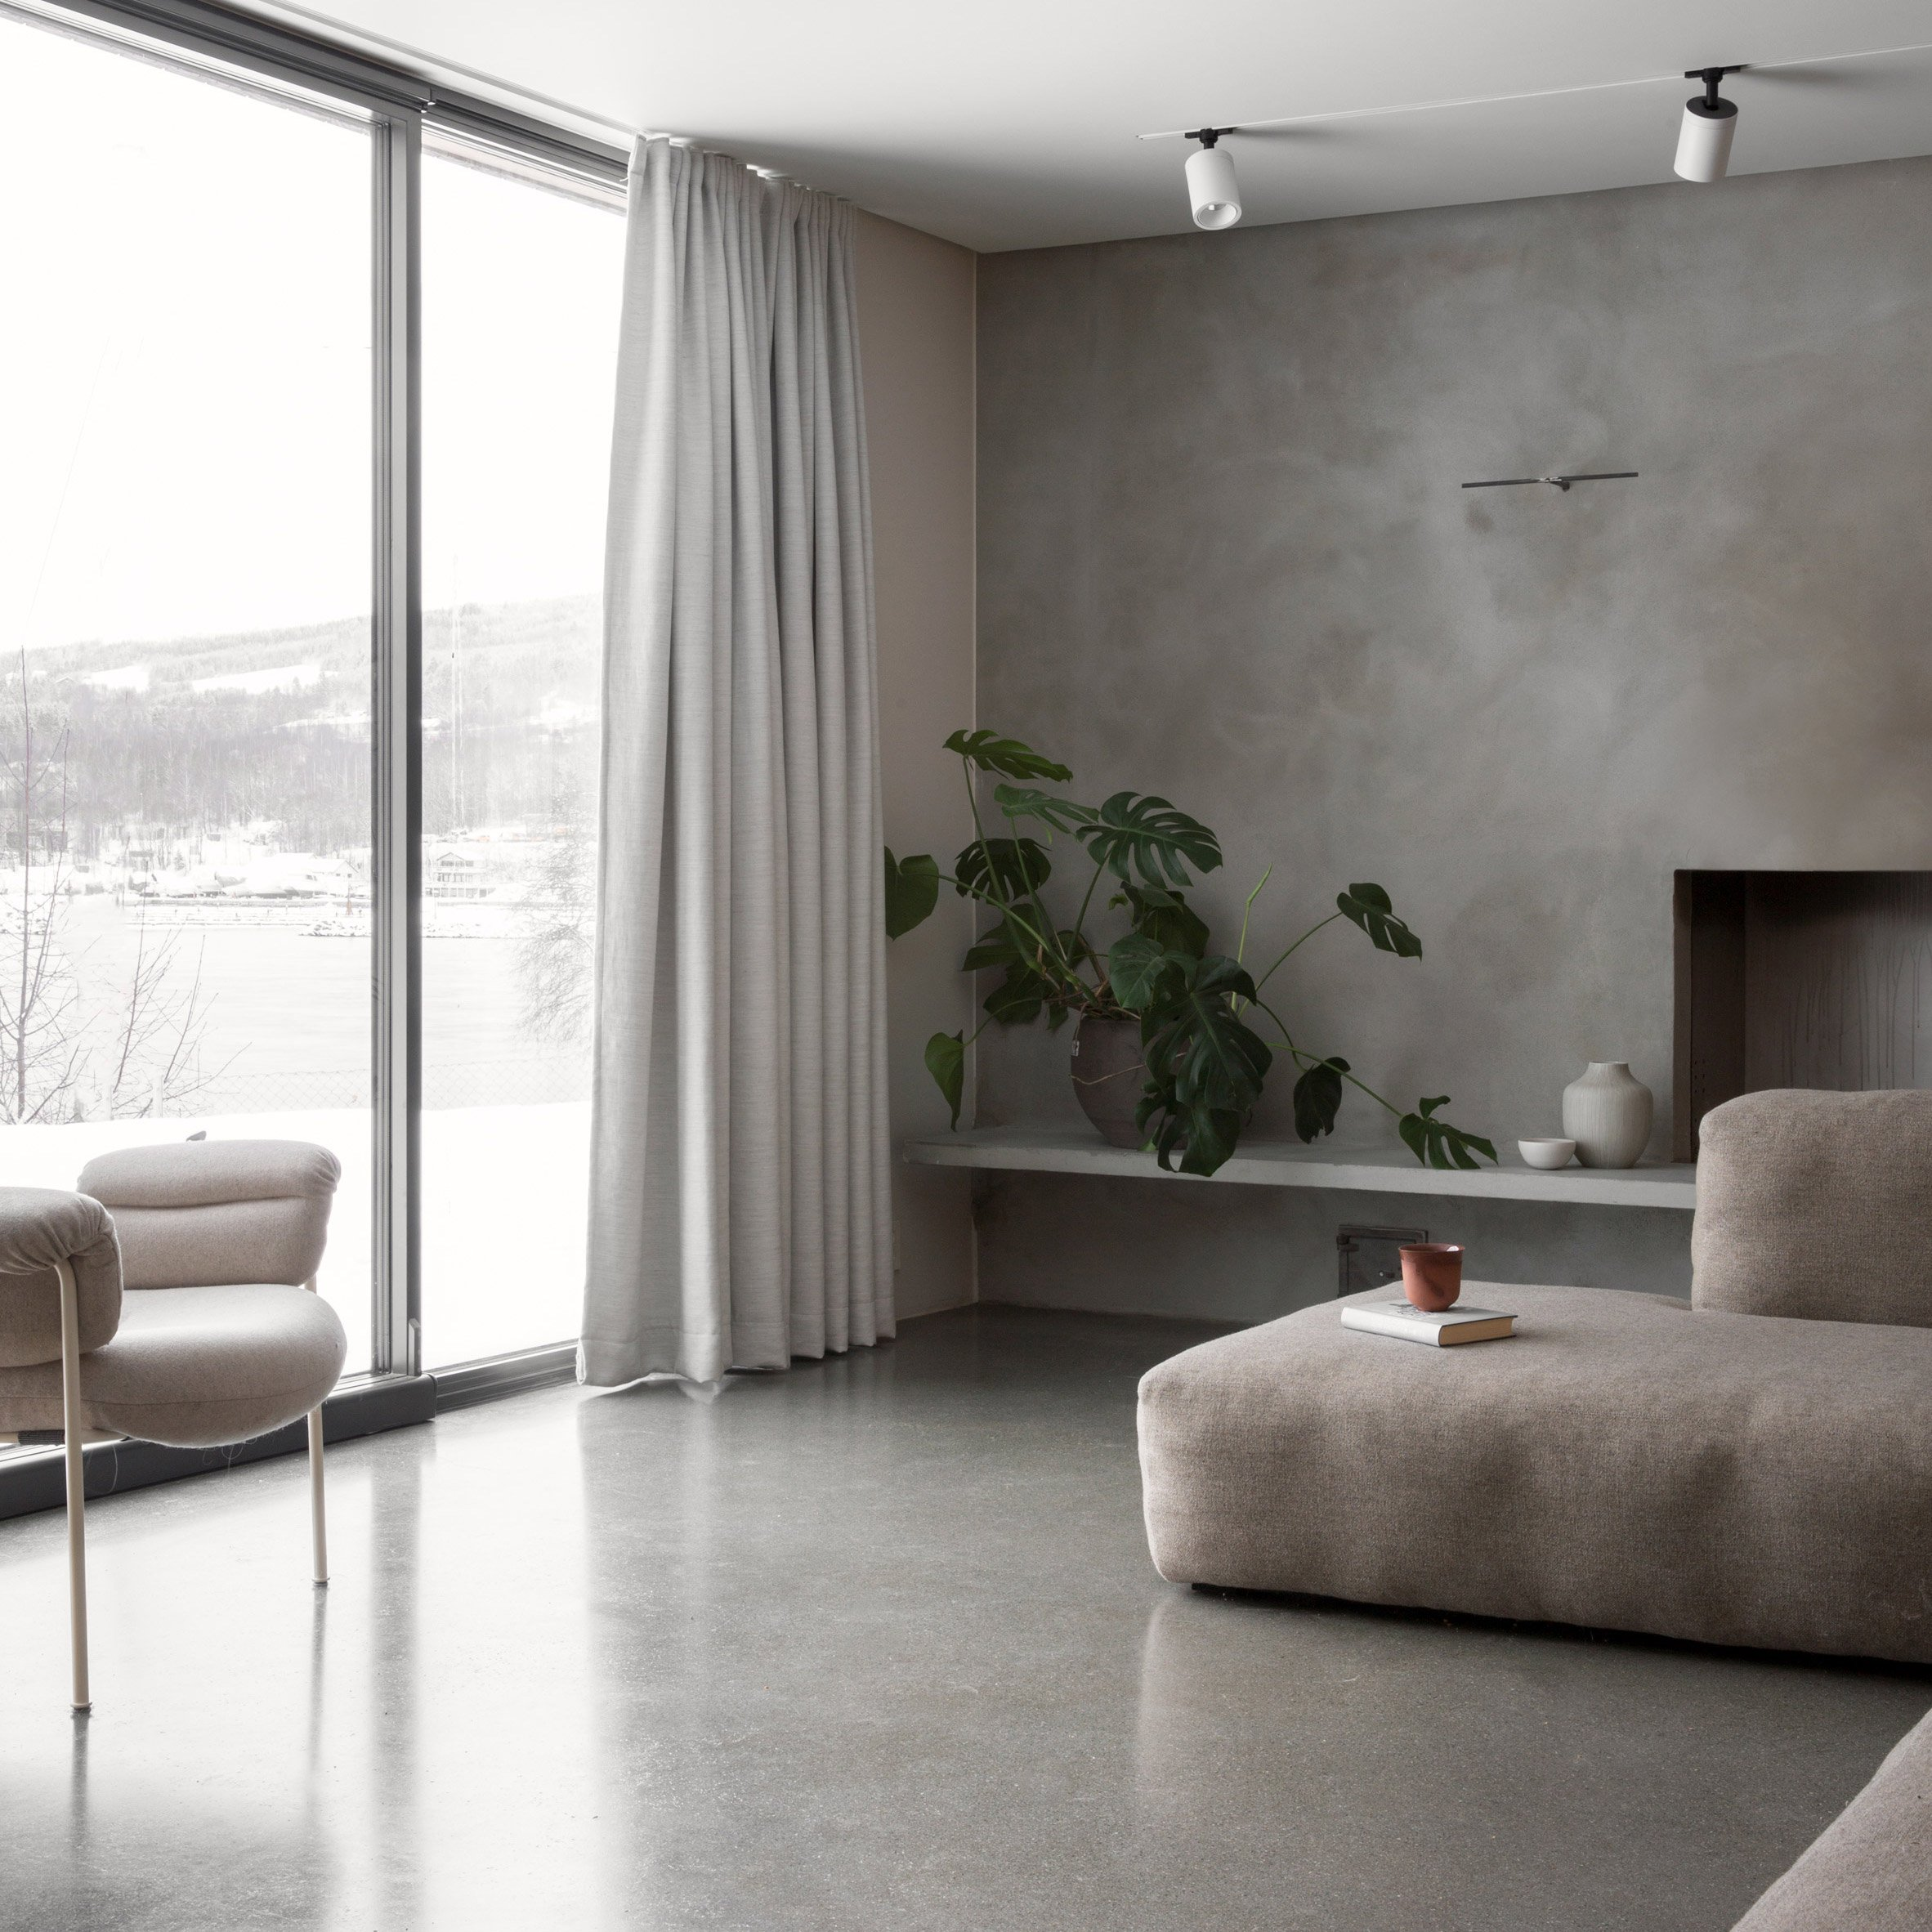 Living At Home De house design and architecture in dezeen